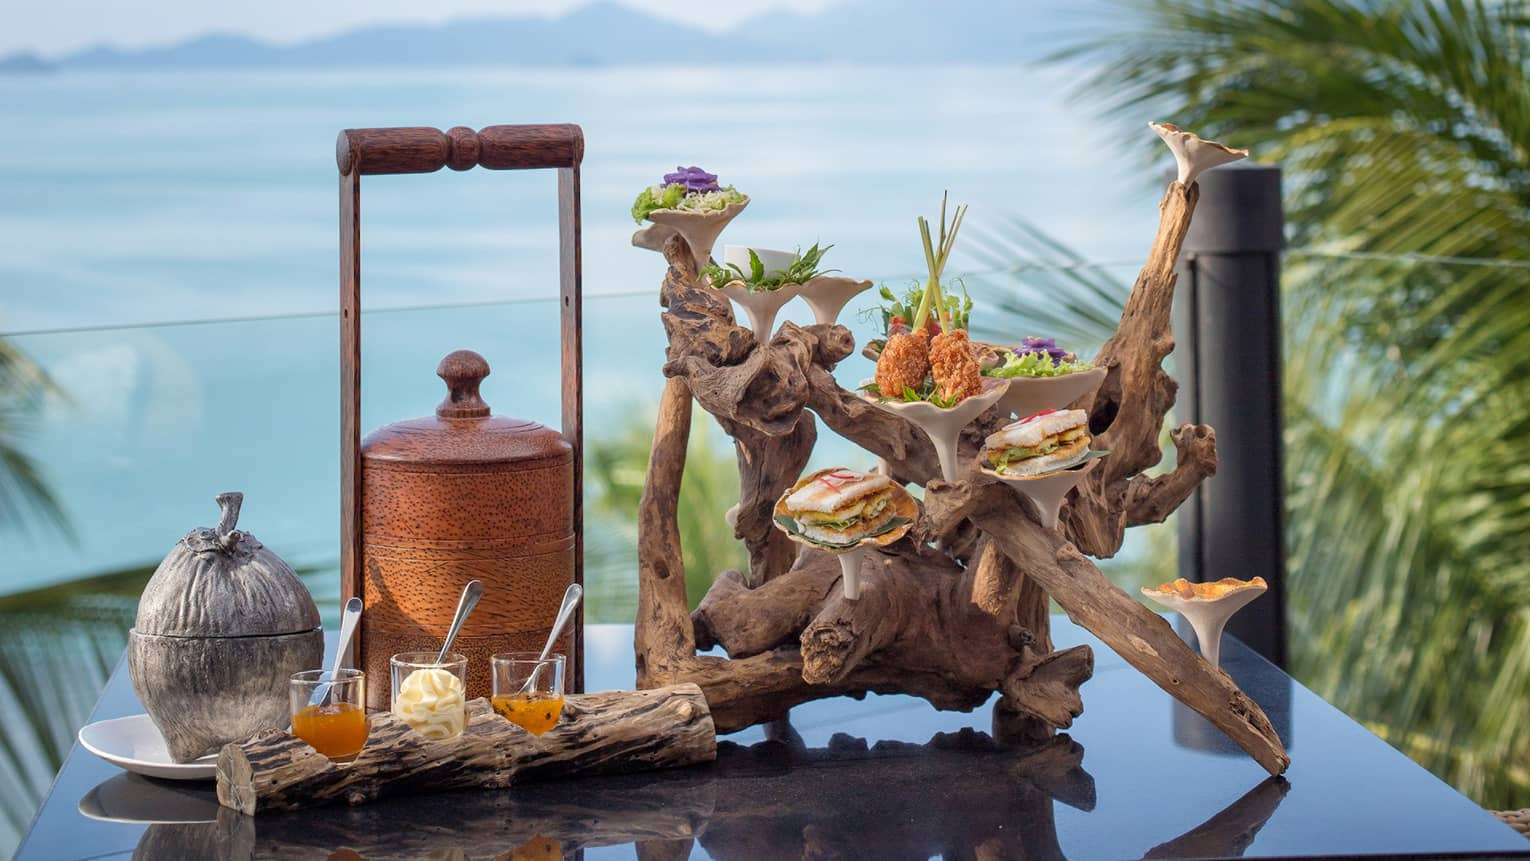 Afternoon tea on a terrace in Koh Samui with a view of the Gulf of Thailand